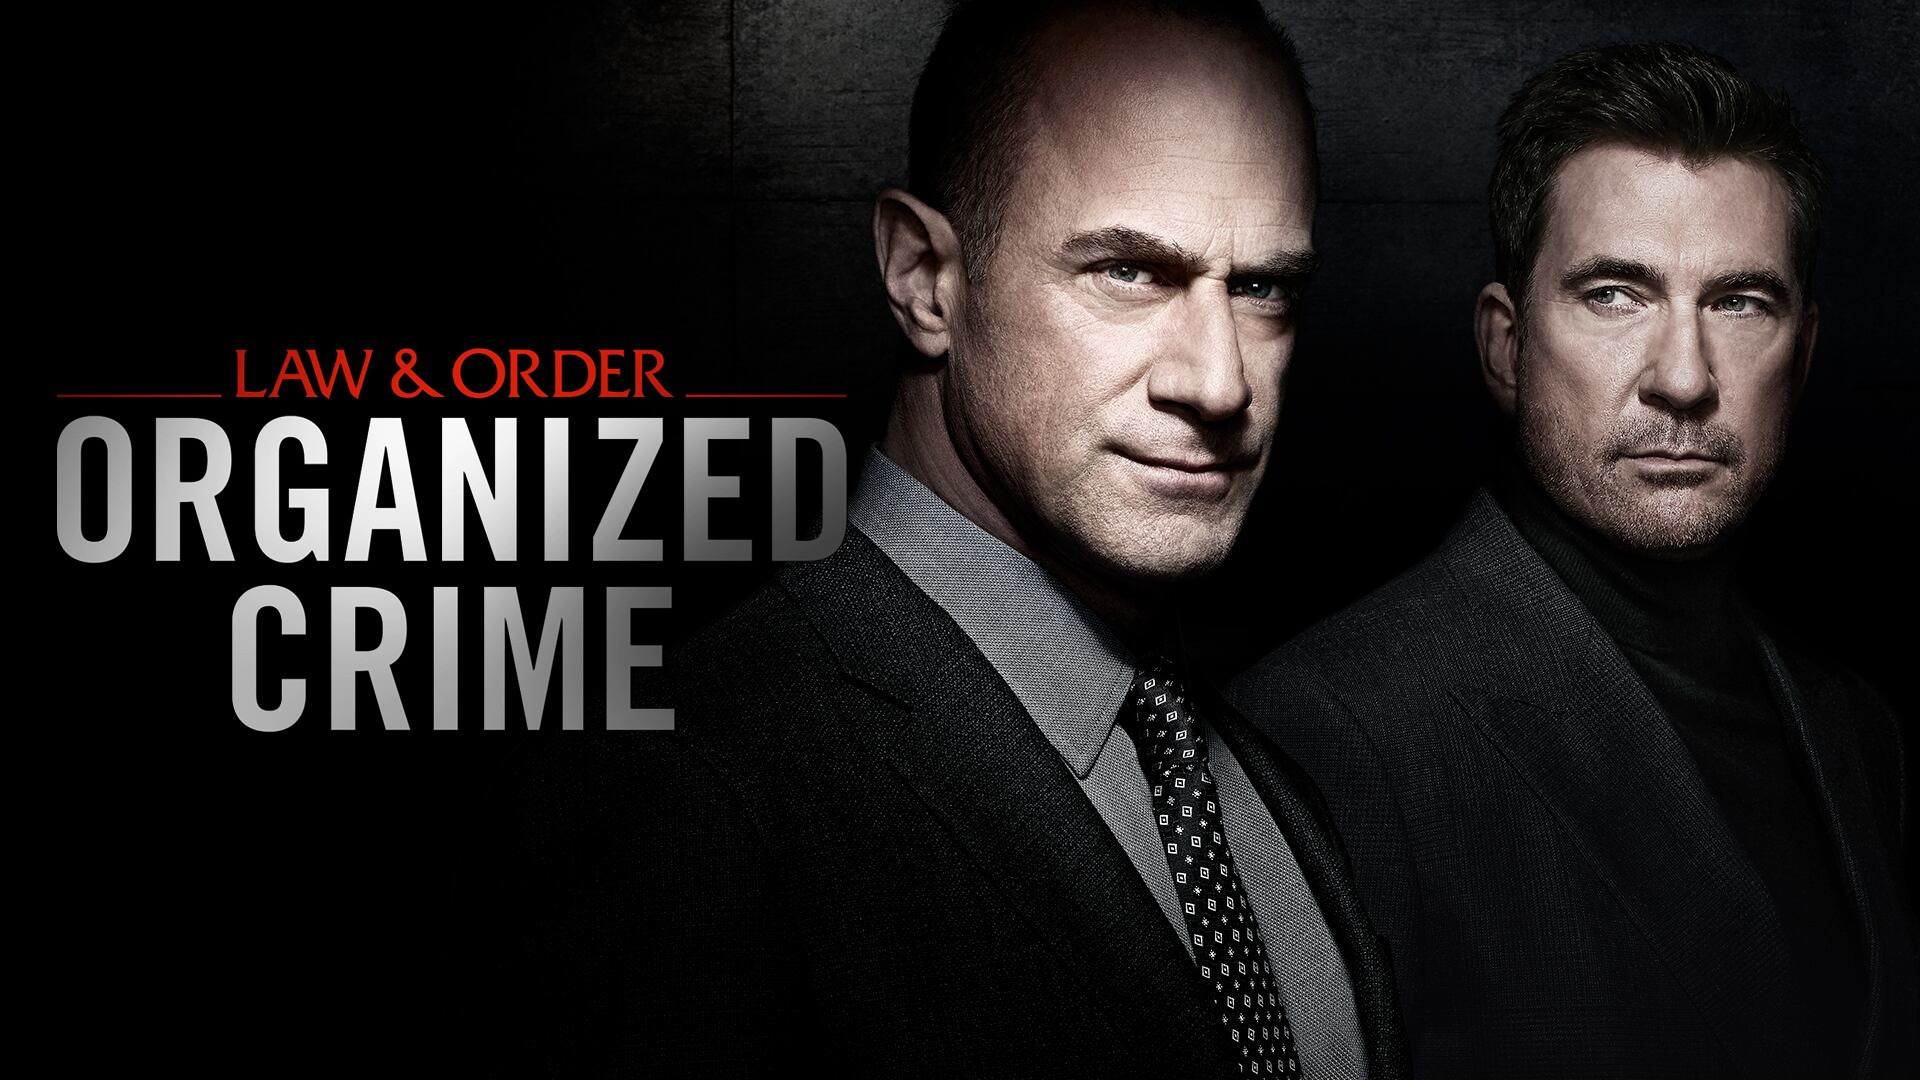 Show Law & Order: Organized Crime